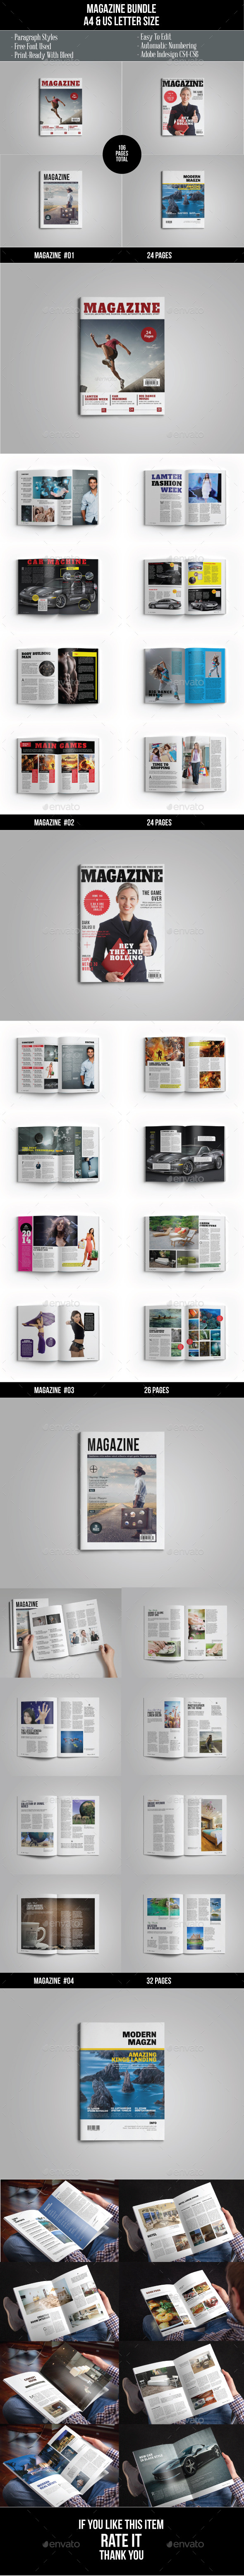 Magazine Bundle Vol. 2 - Magazines Print Templates